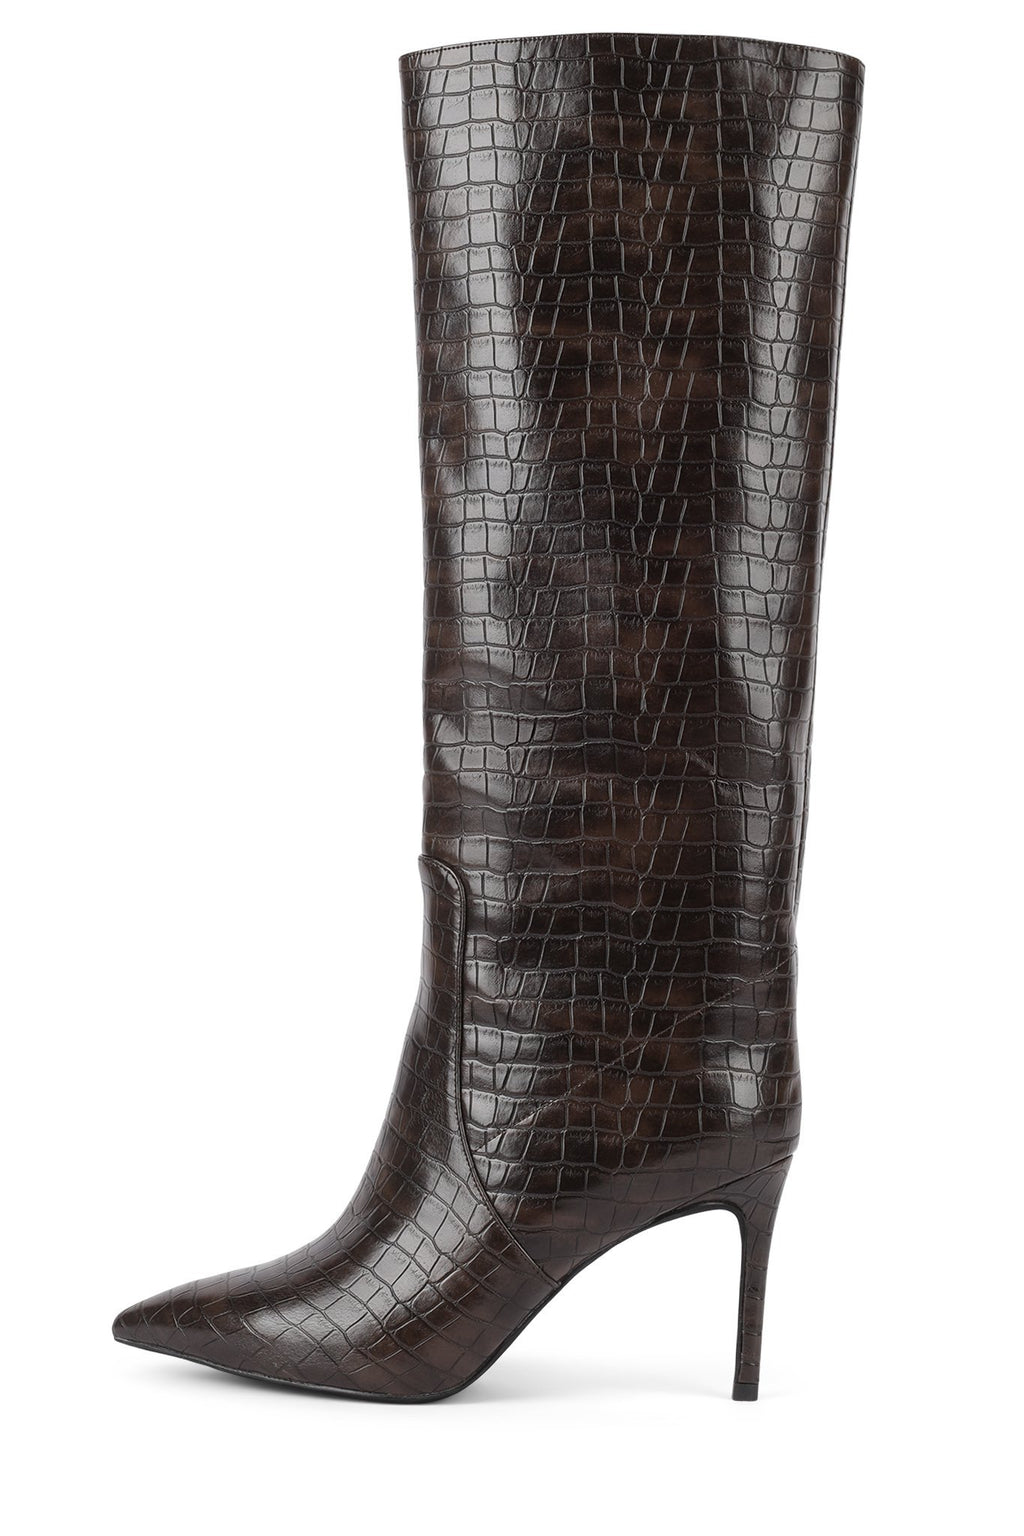 ARSEN Jeffrey Campbell Brown Croco 5